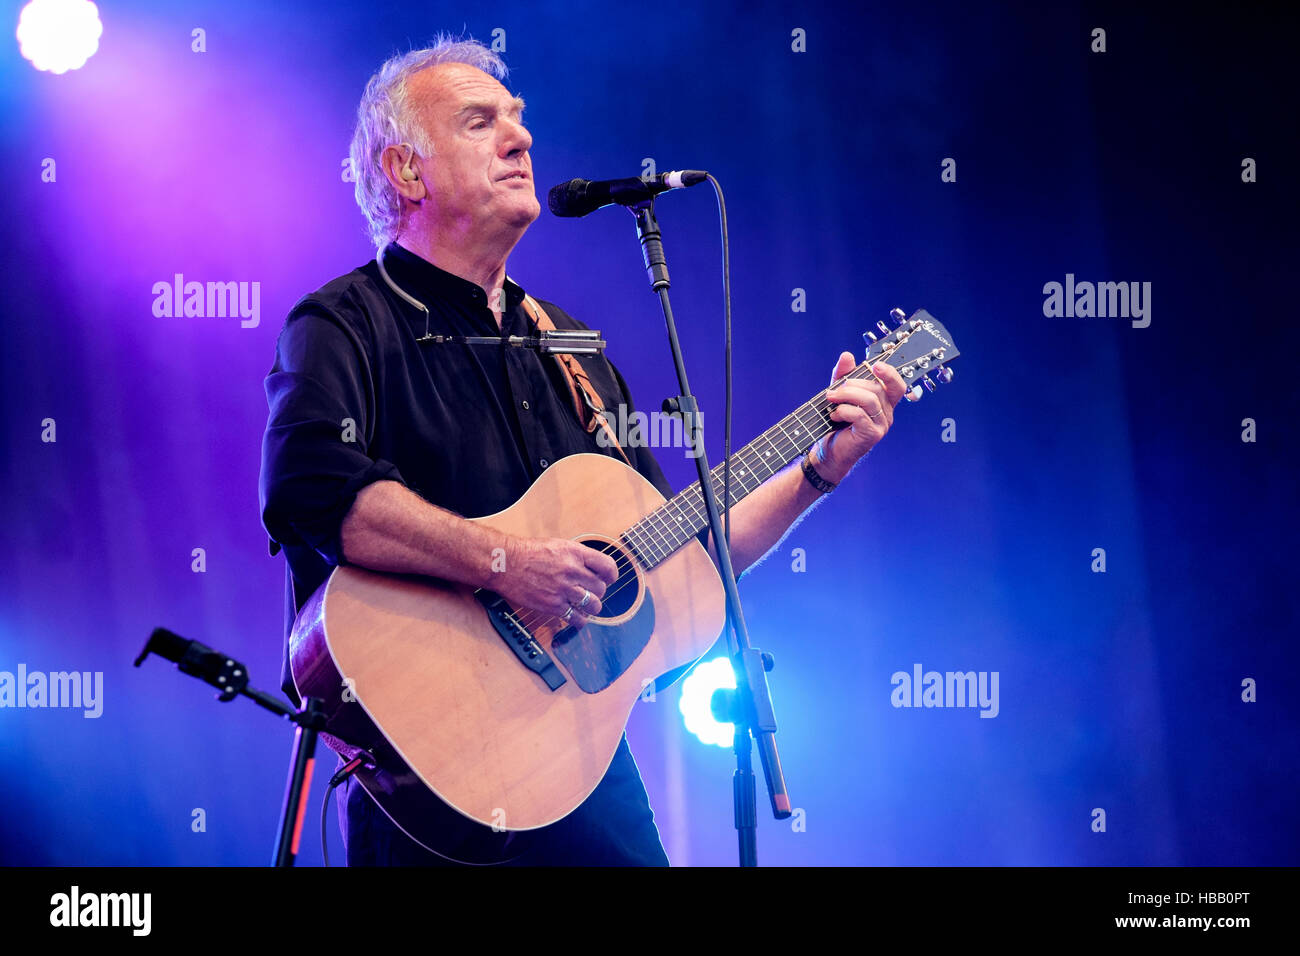 Ralph McTell performing at Fairport's Cropredy Convention,  Banbury, England, UK. August 13, 2016 - Stock Image